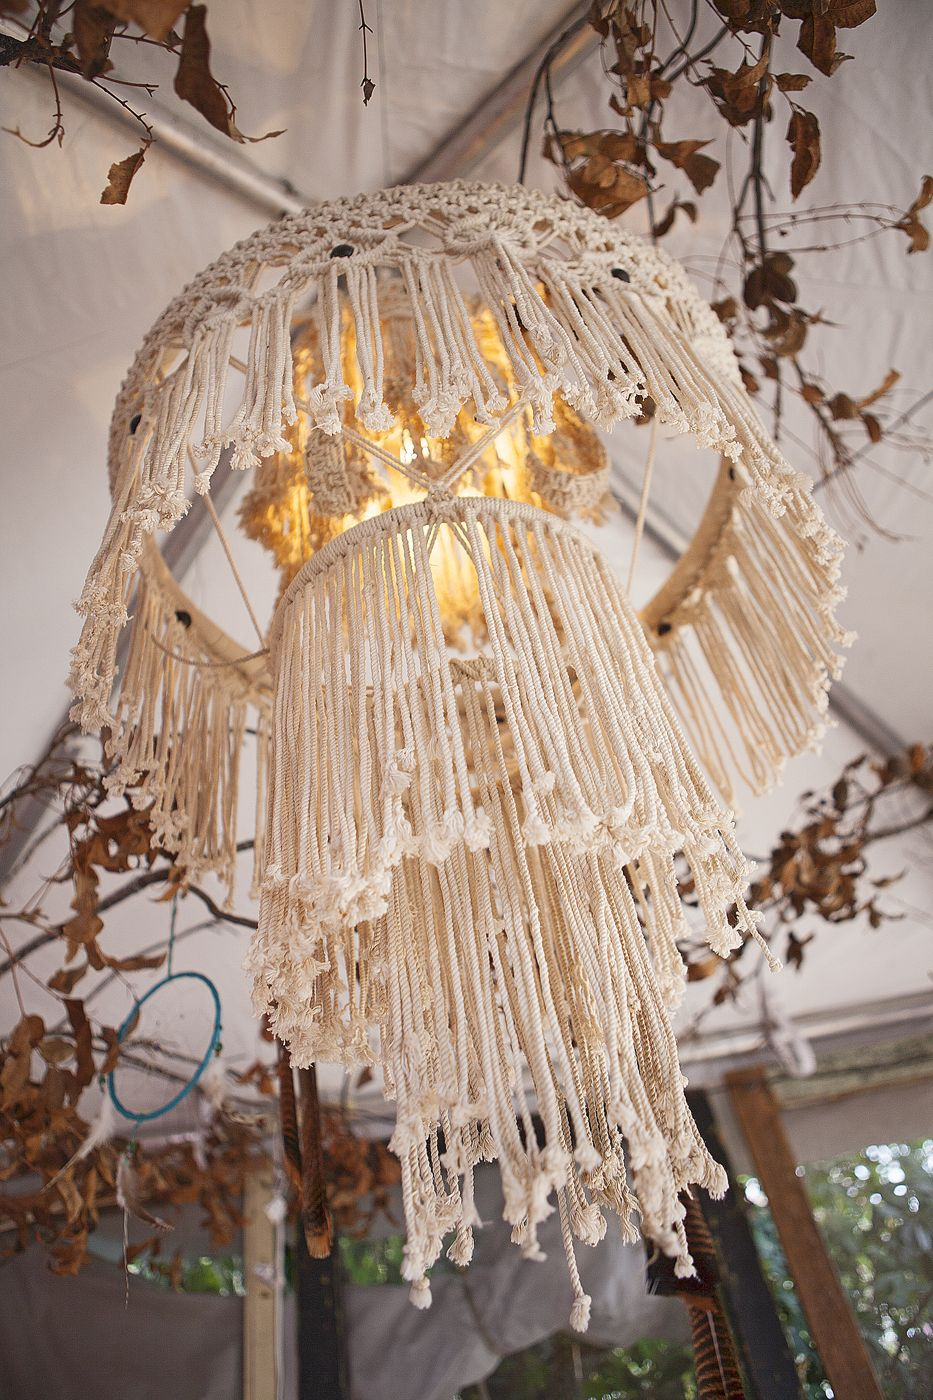 Macrame Hanging Table Turned Into A Chandelier Using Light Cord